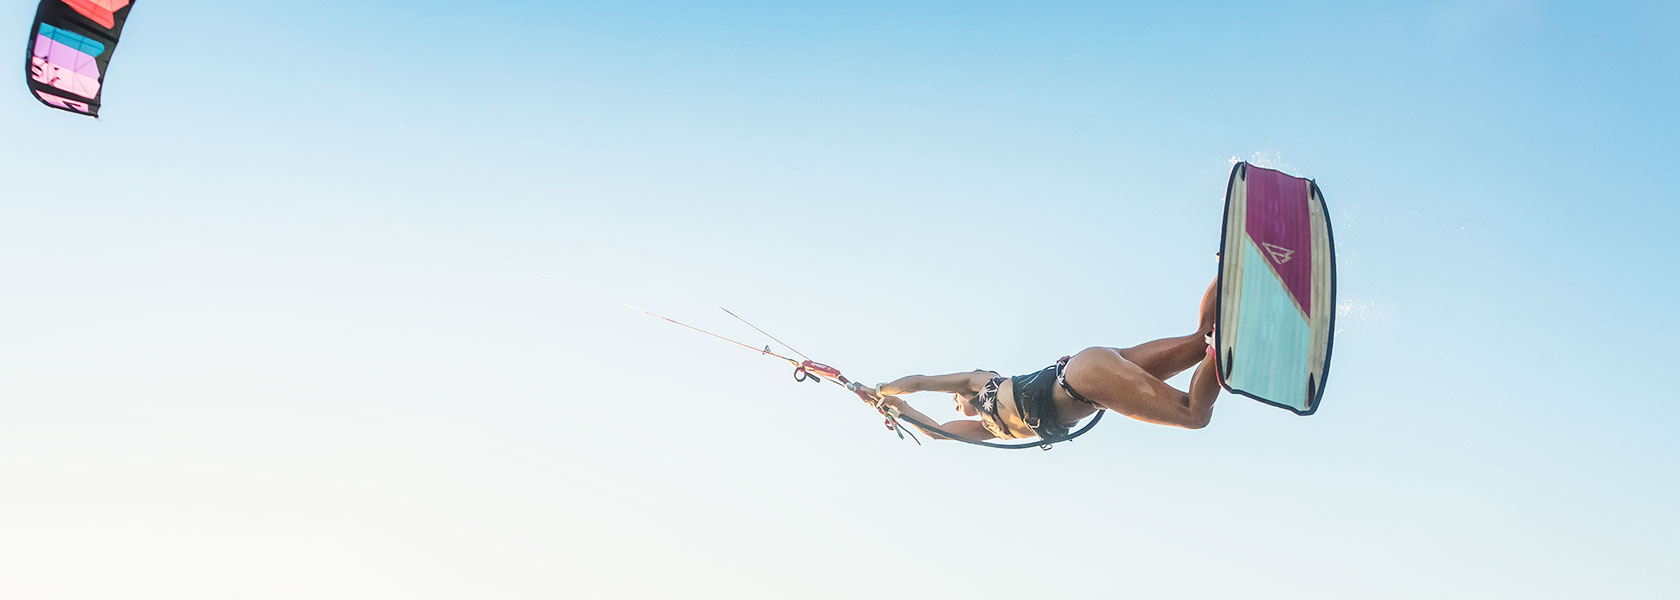 female kiteboarder